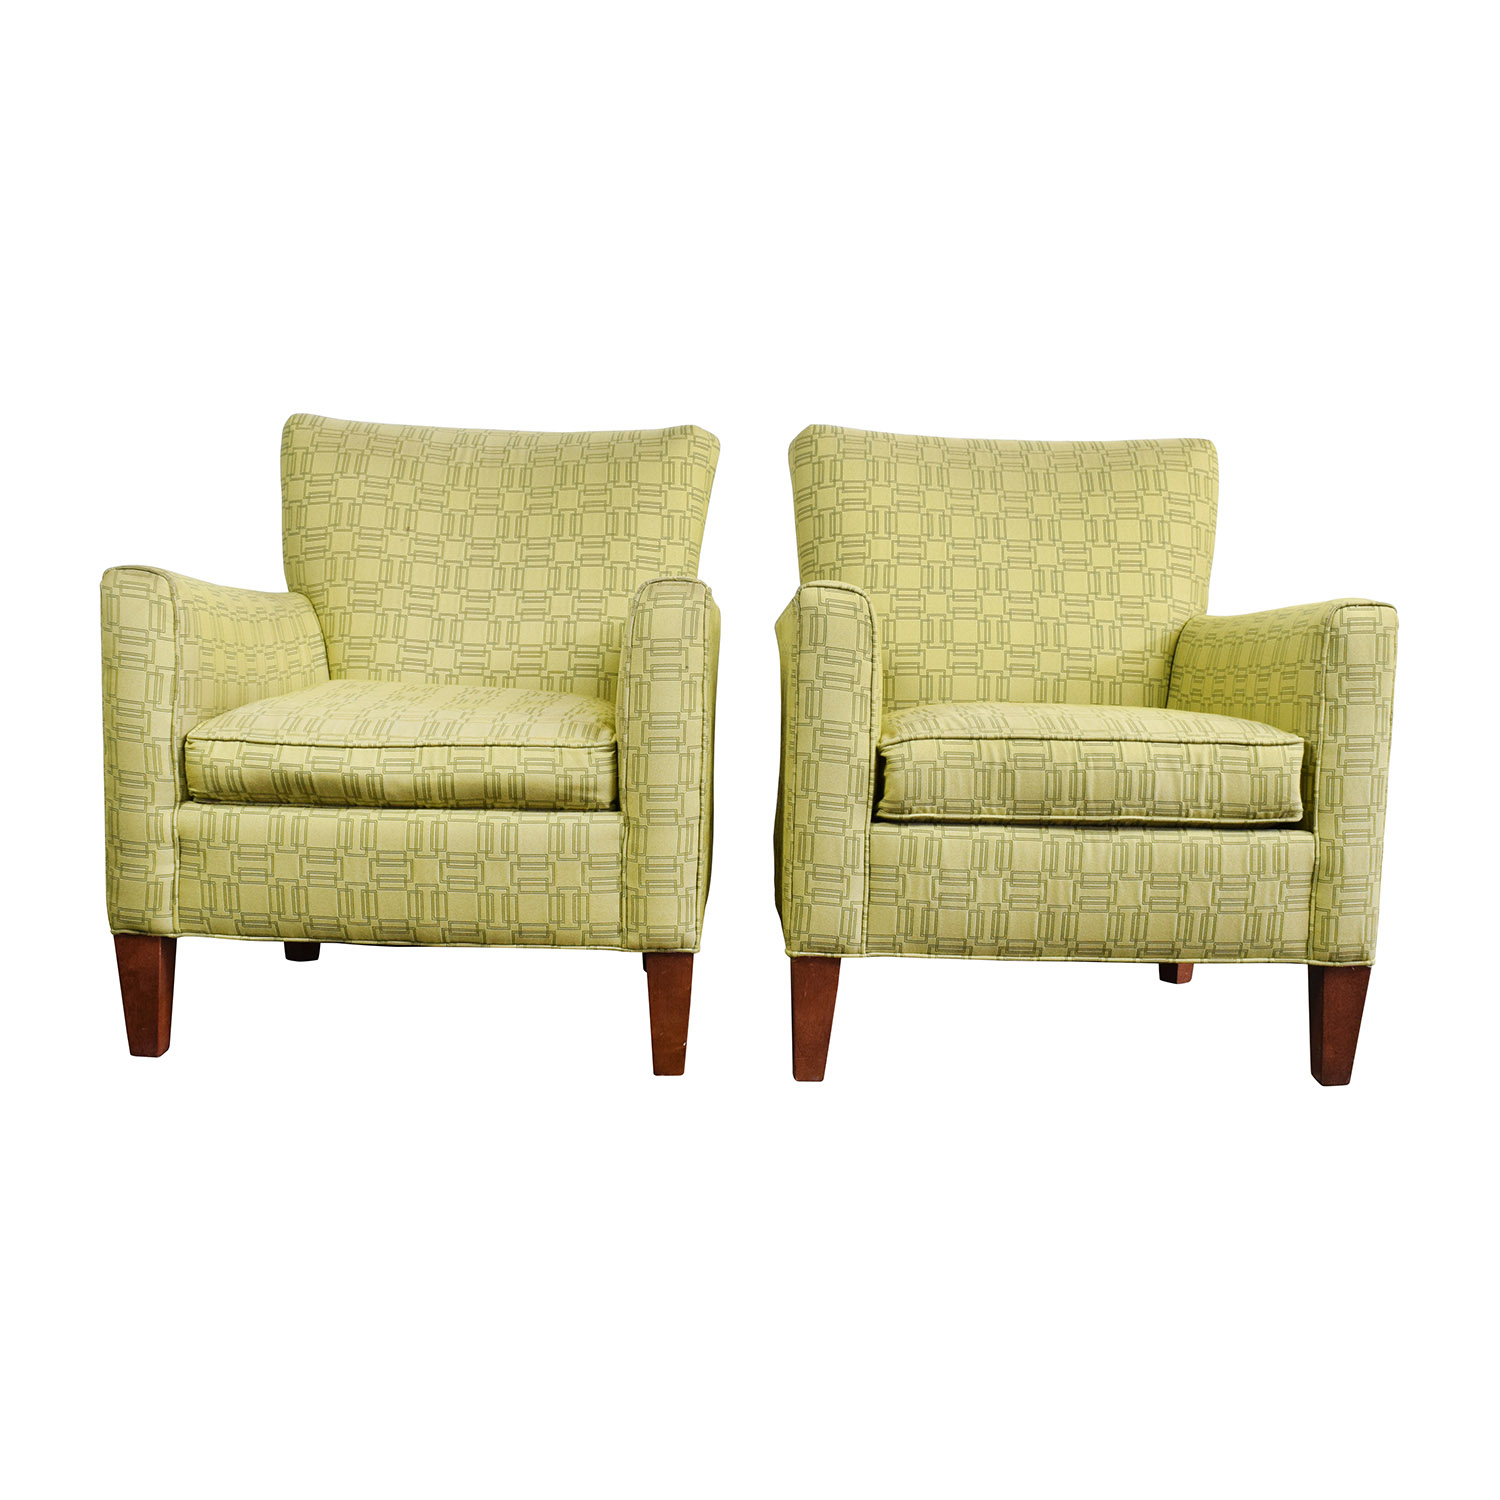 buy Ethan Allen Ethan Allen Green Upholstered Accent Chairs online